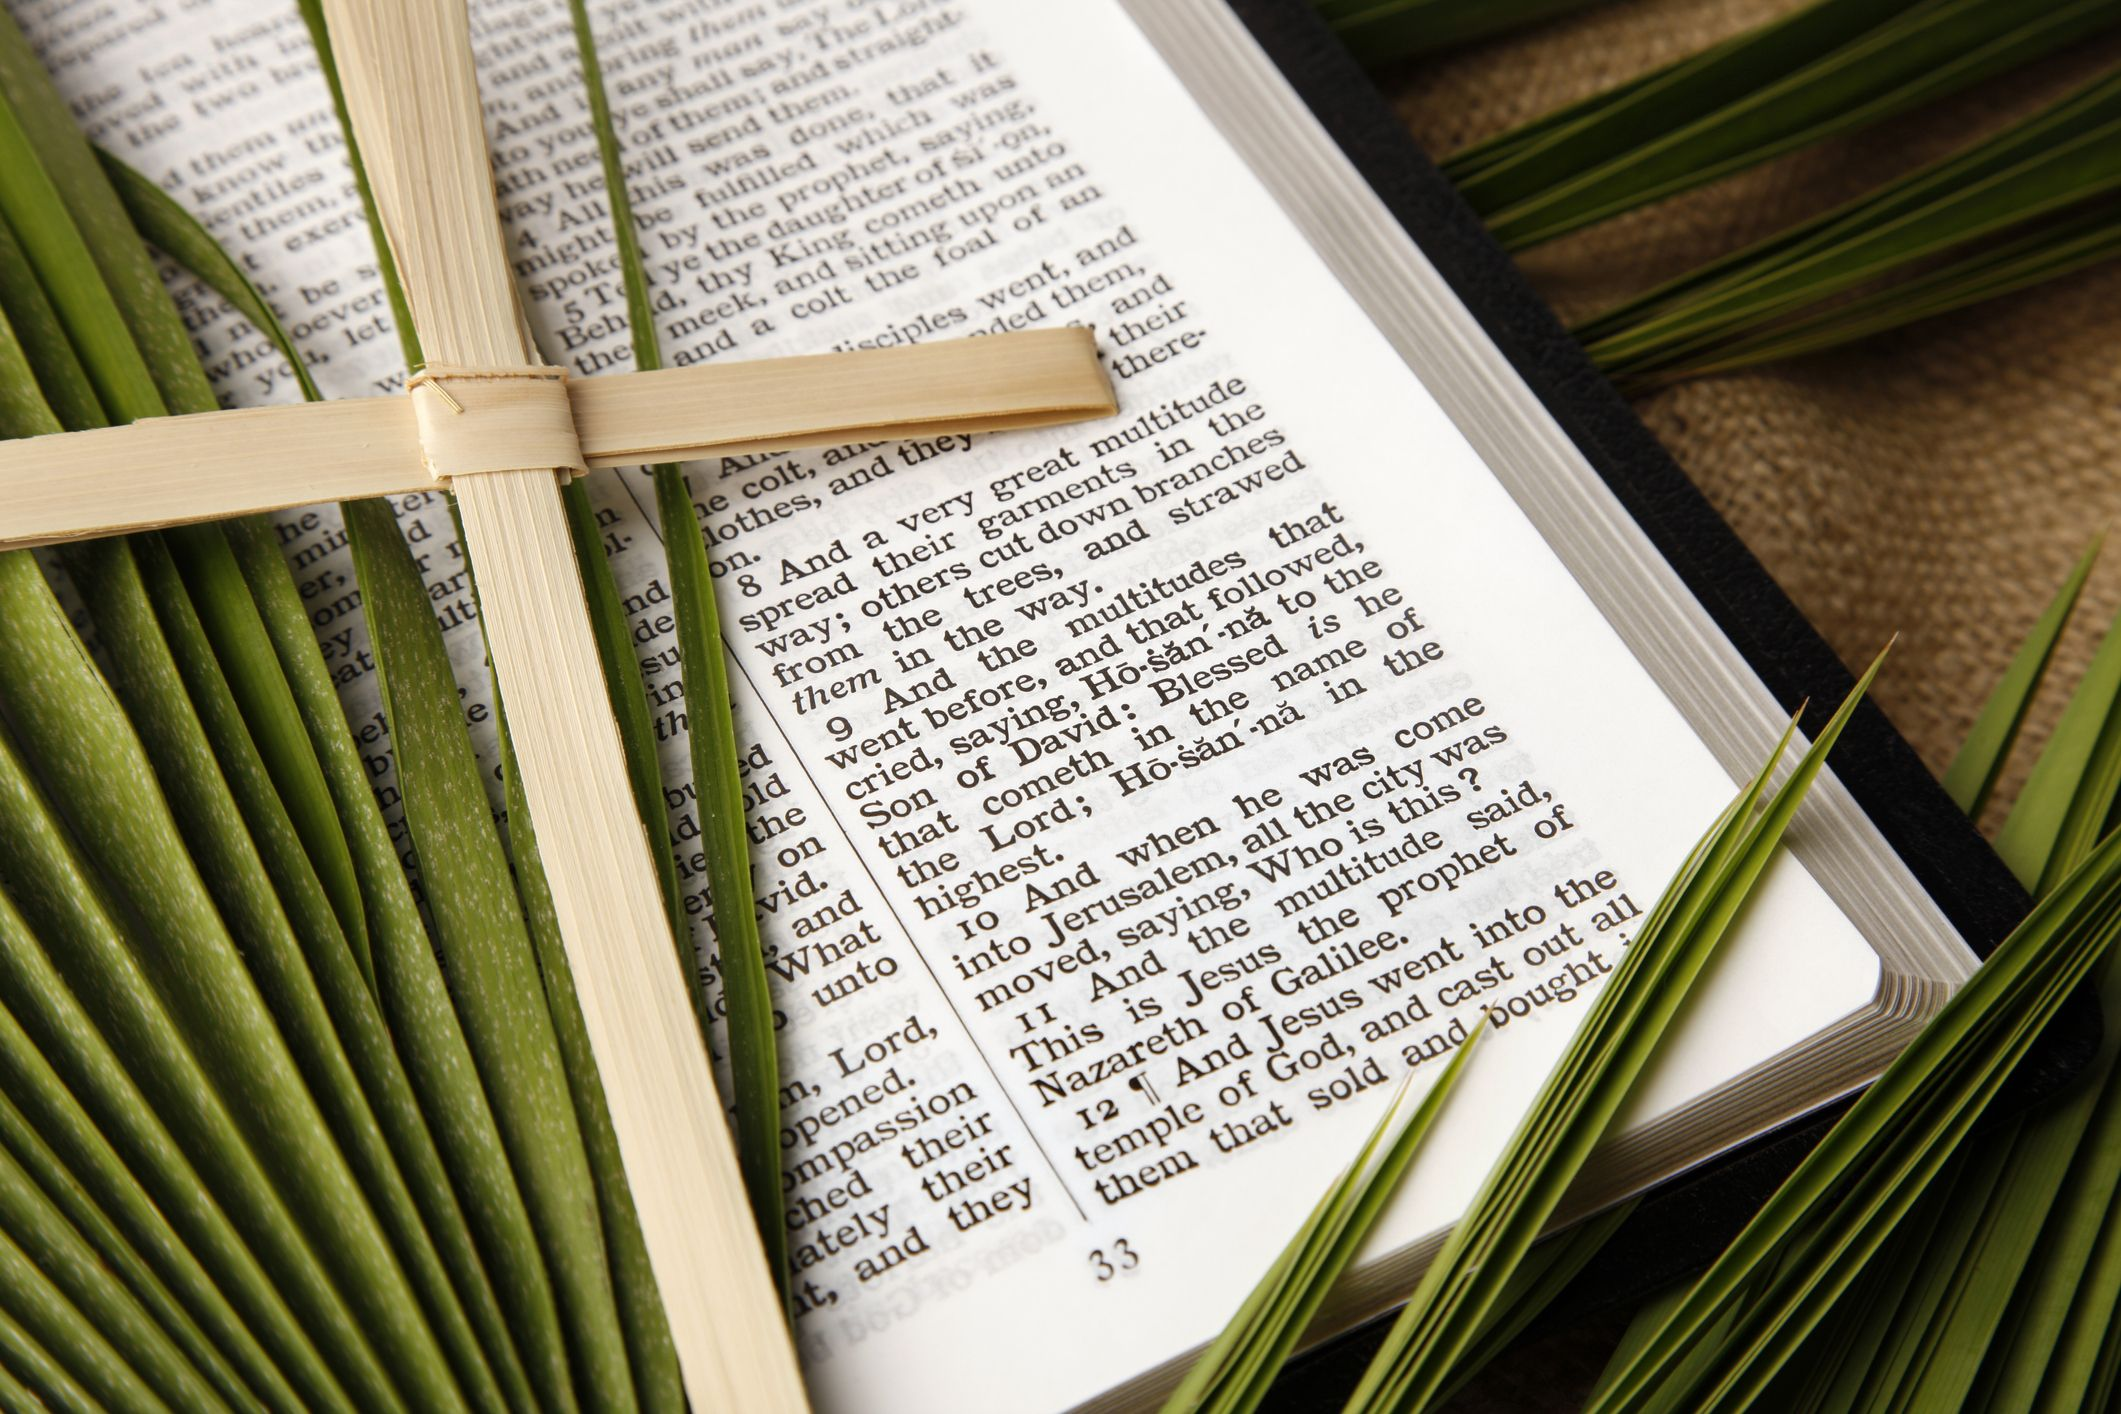 15 Palm Sunday Scriptures - Top Bible Verses for Palm Sunday